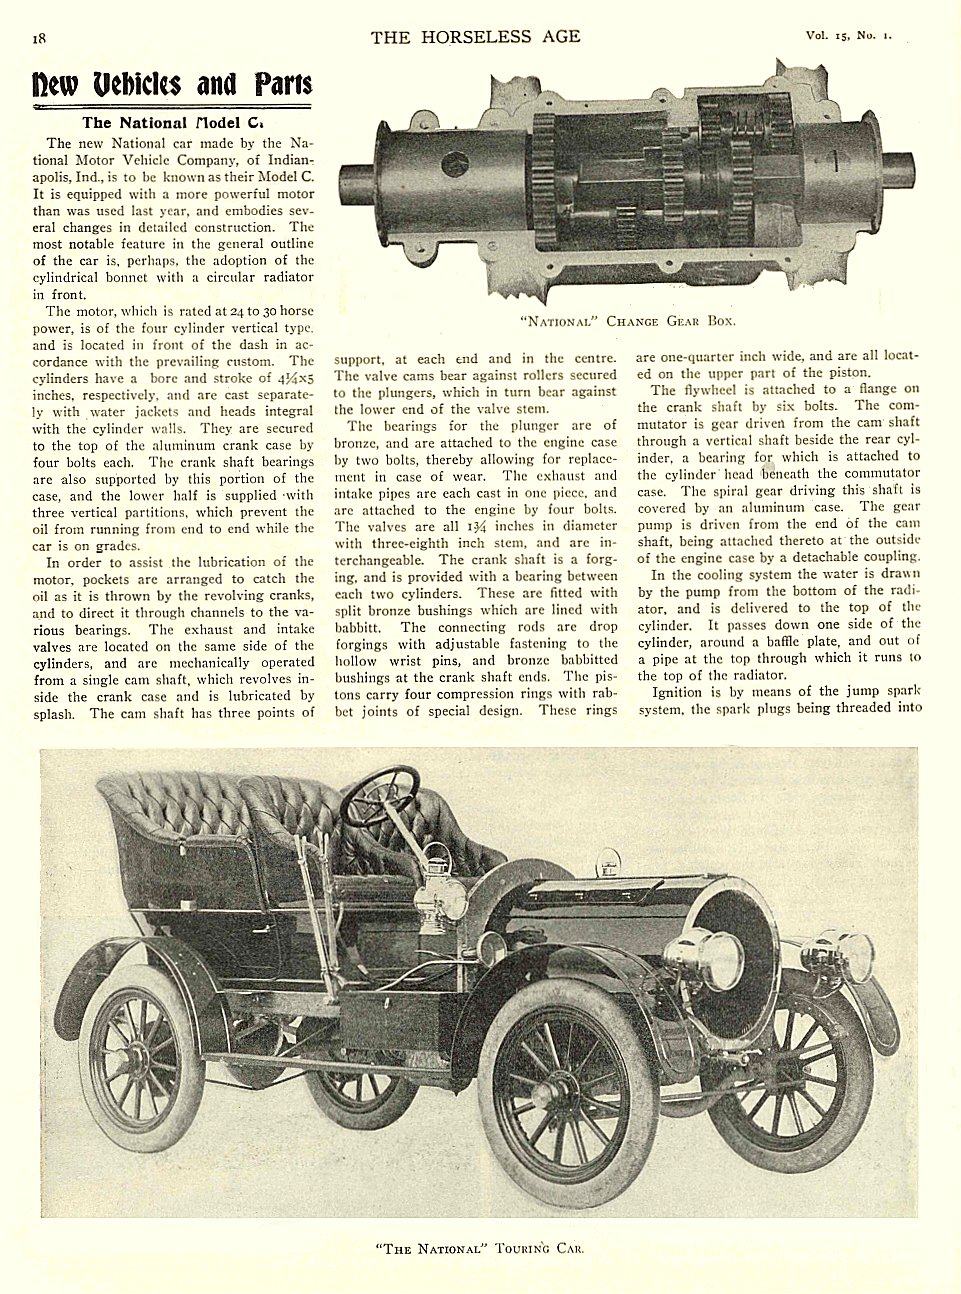 "1905 1 4 NATIONAL Article The National Model C ""The National"" Touring Car THE HORSELESS AGE January 4, 1905 University of Minnesota Library 8.75″x11.5″ page 18"